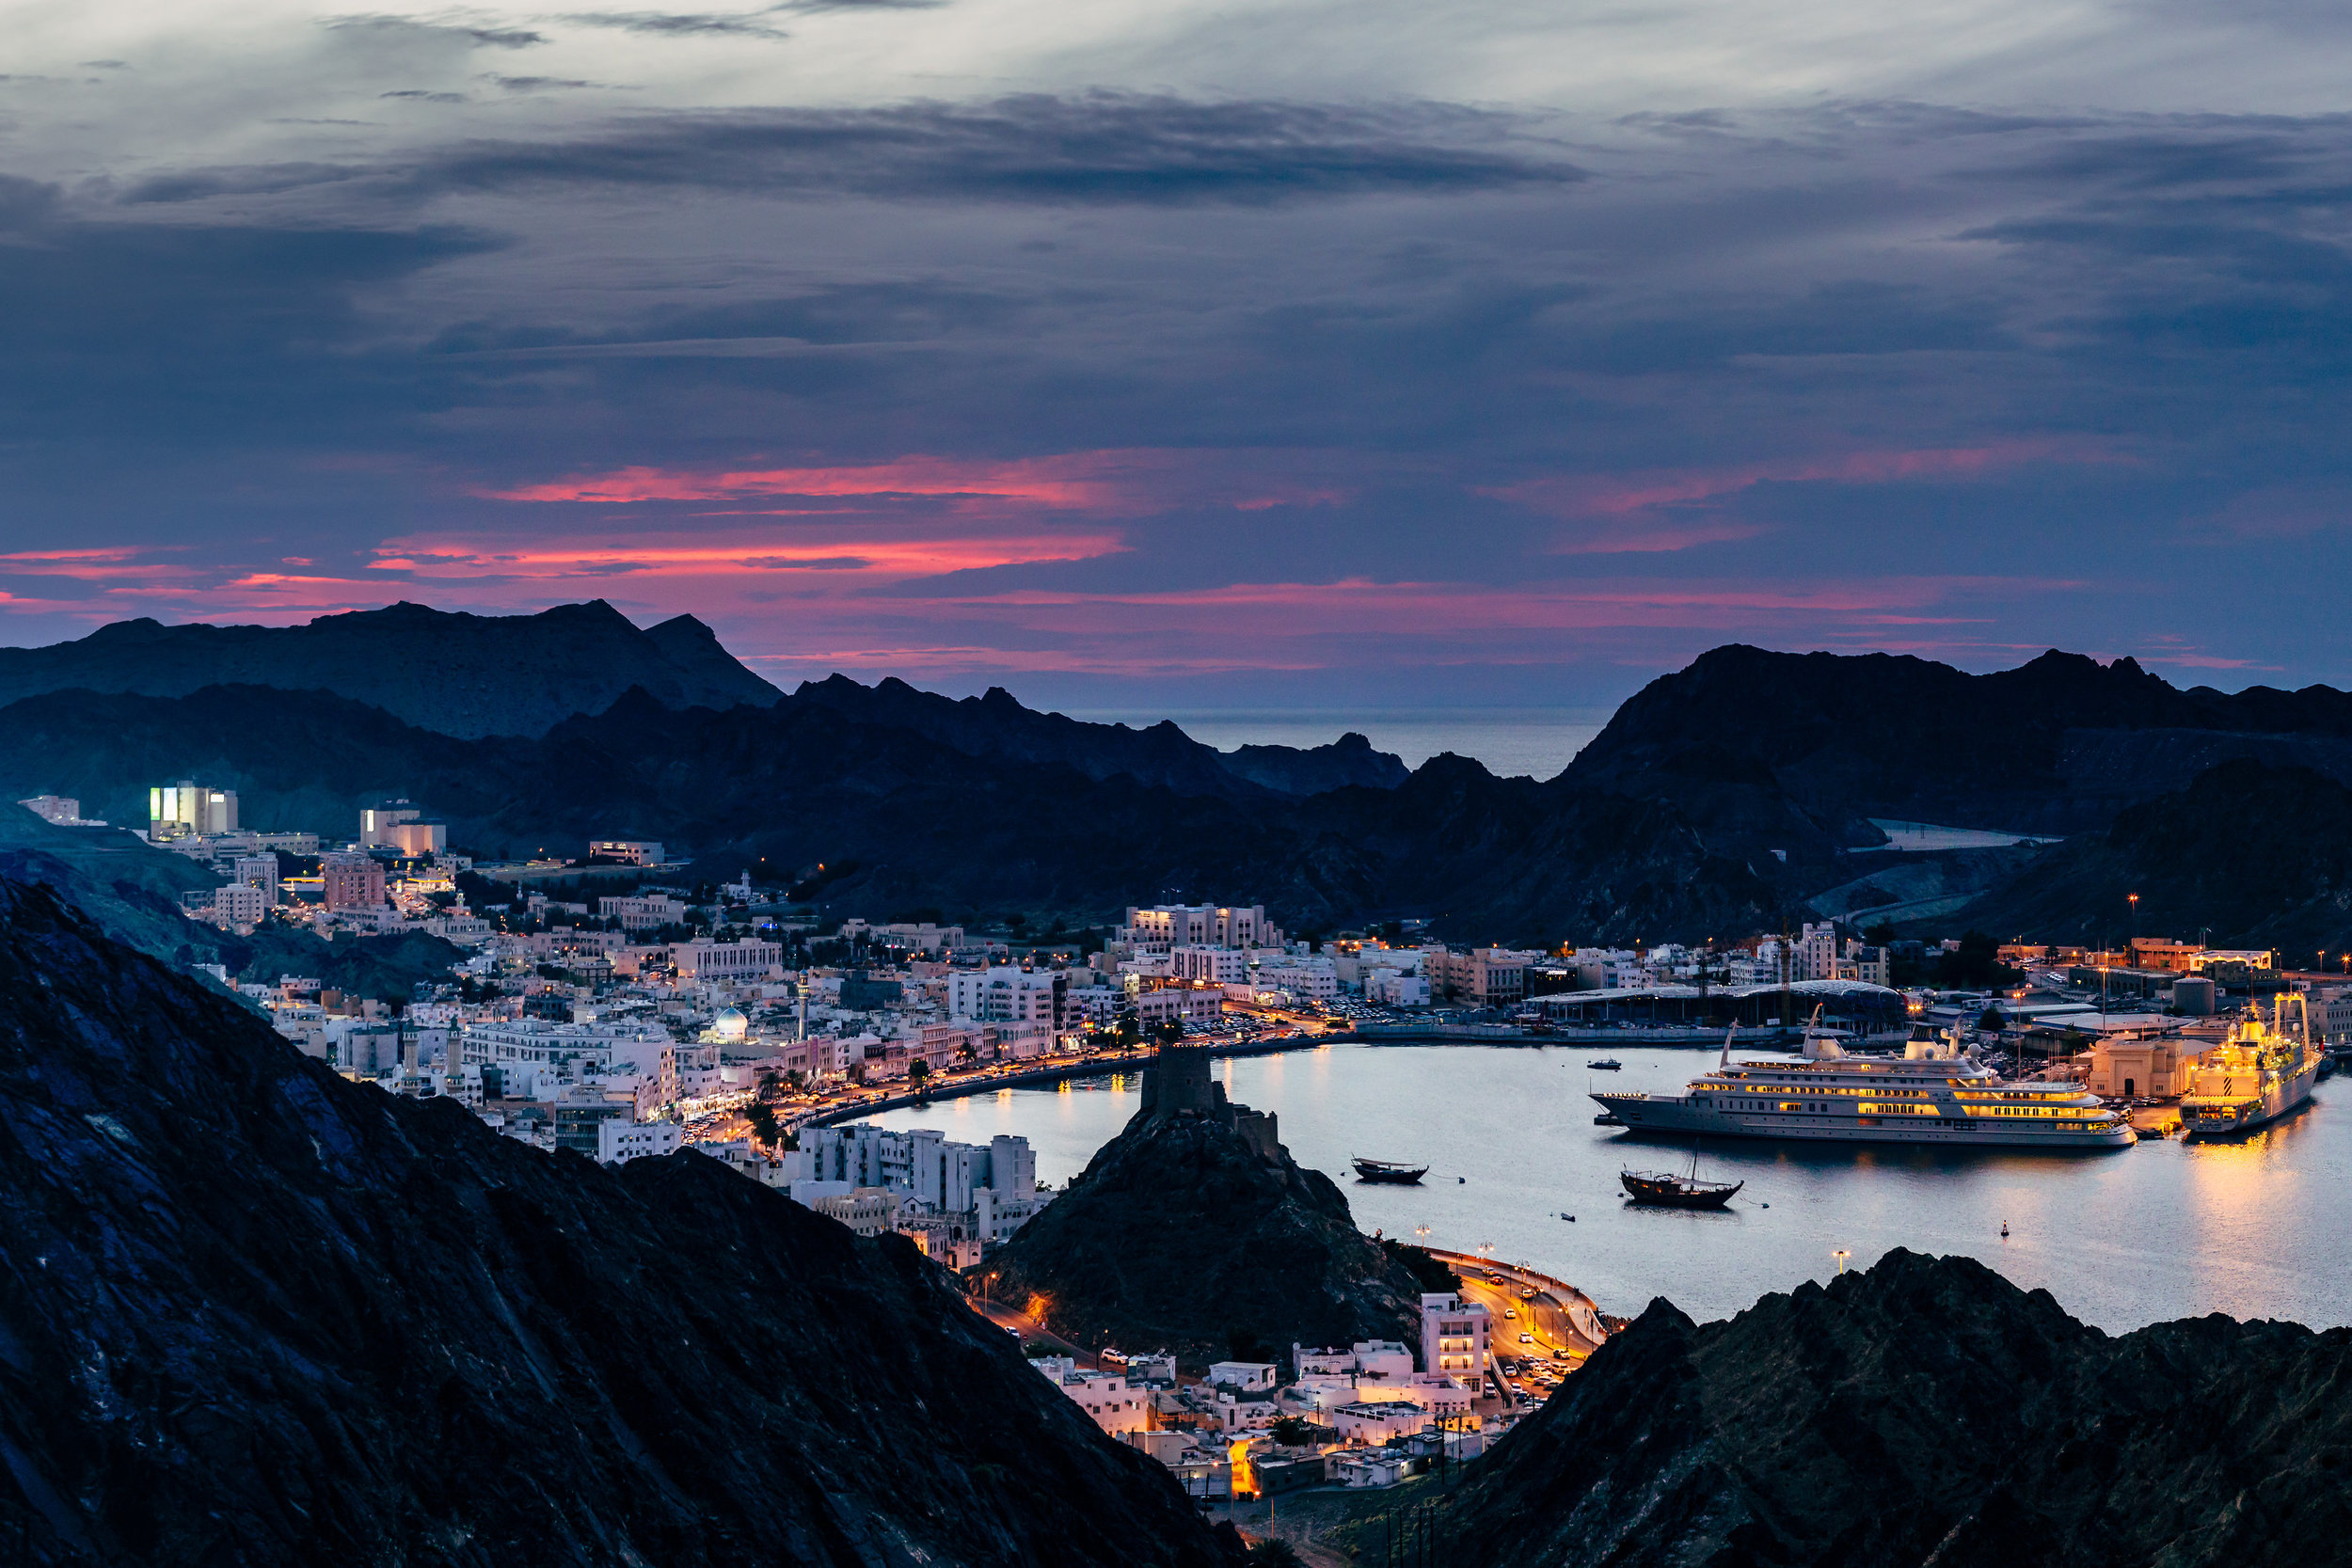 The sun sets behind the old city of Muttrah, one of the oldest ports in the Middle East.